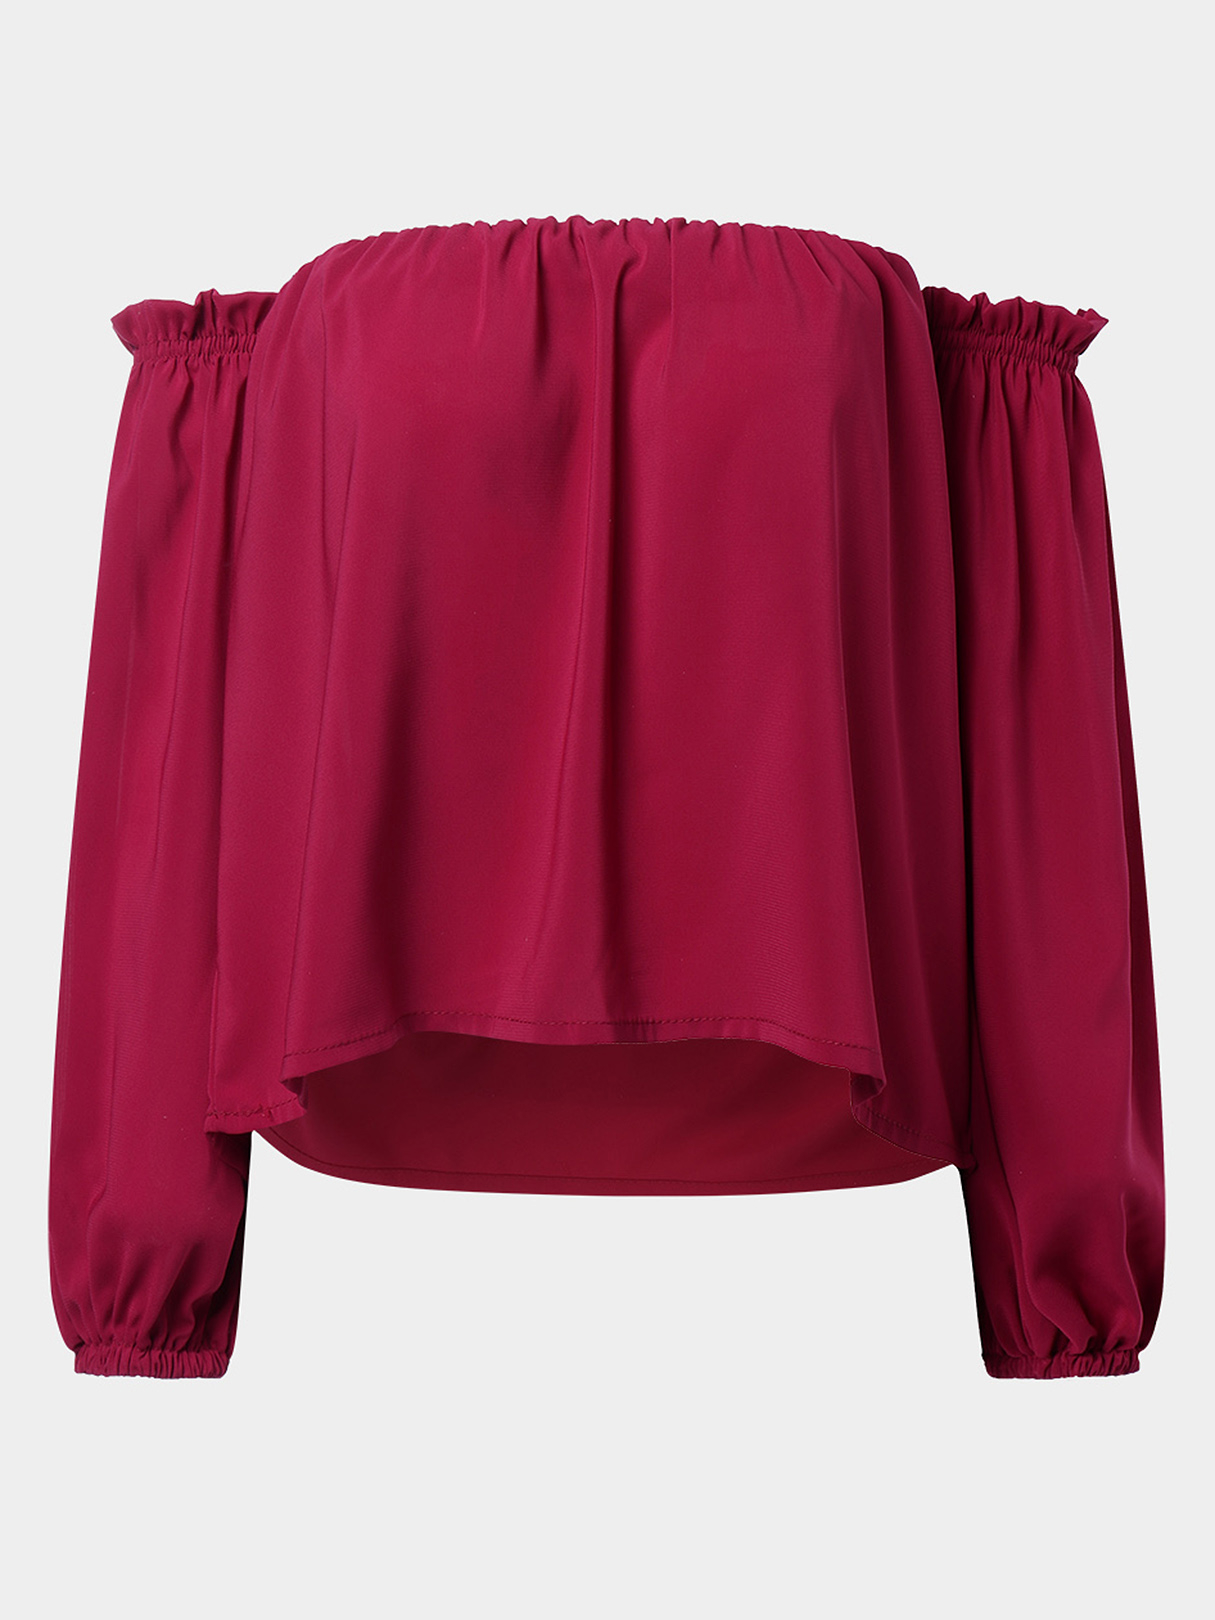 Red Pleated Details Off The Shoulder Design Lantern Long Sleeves Blouse